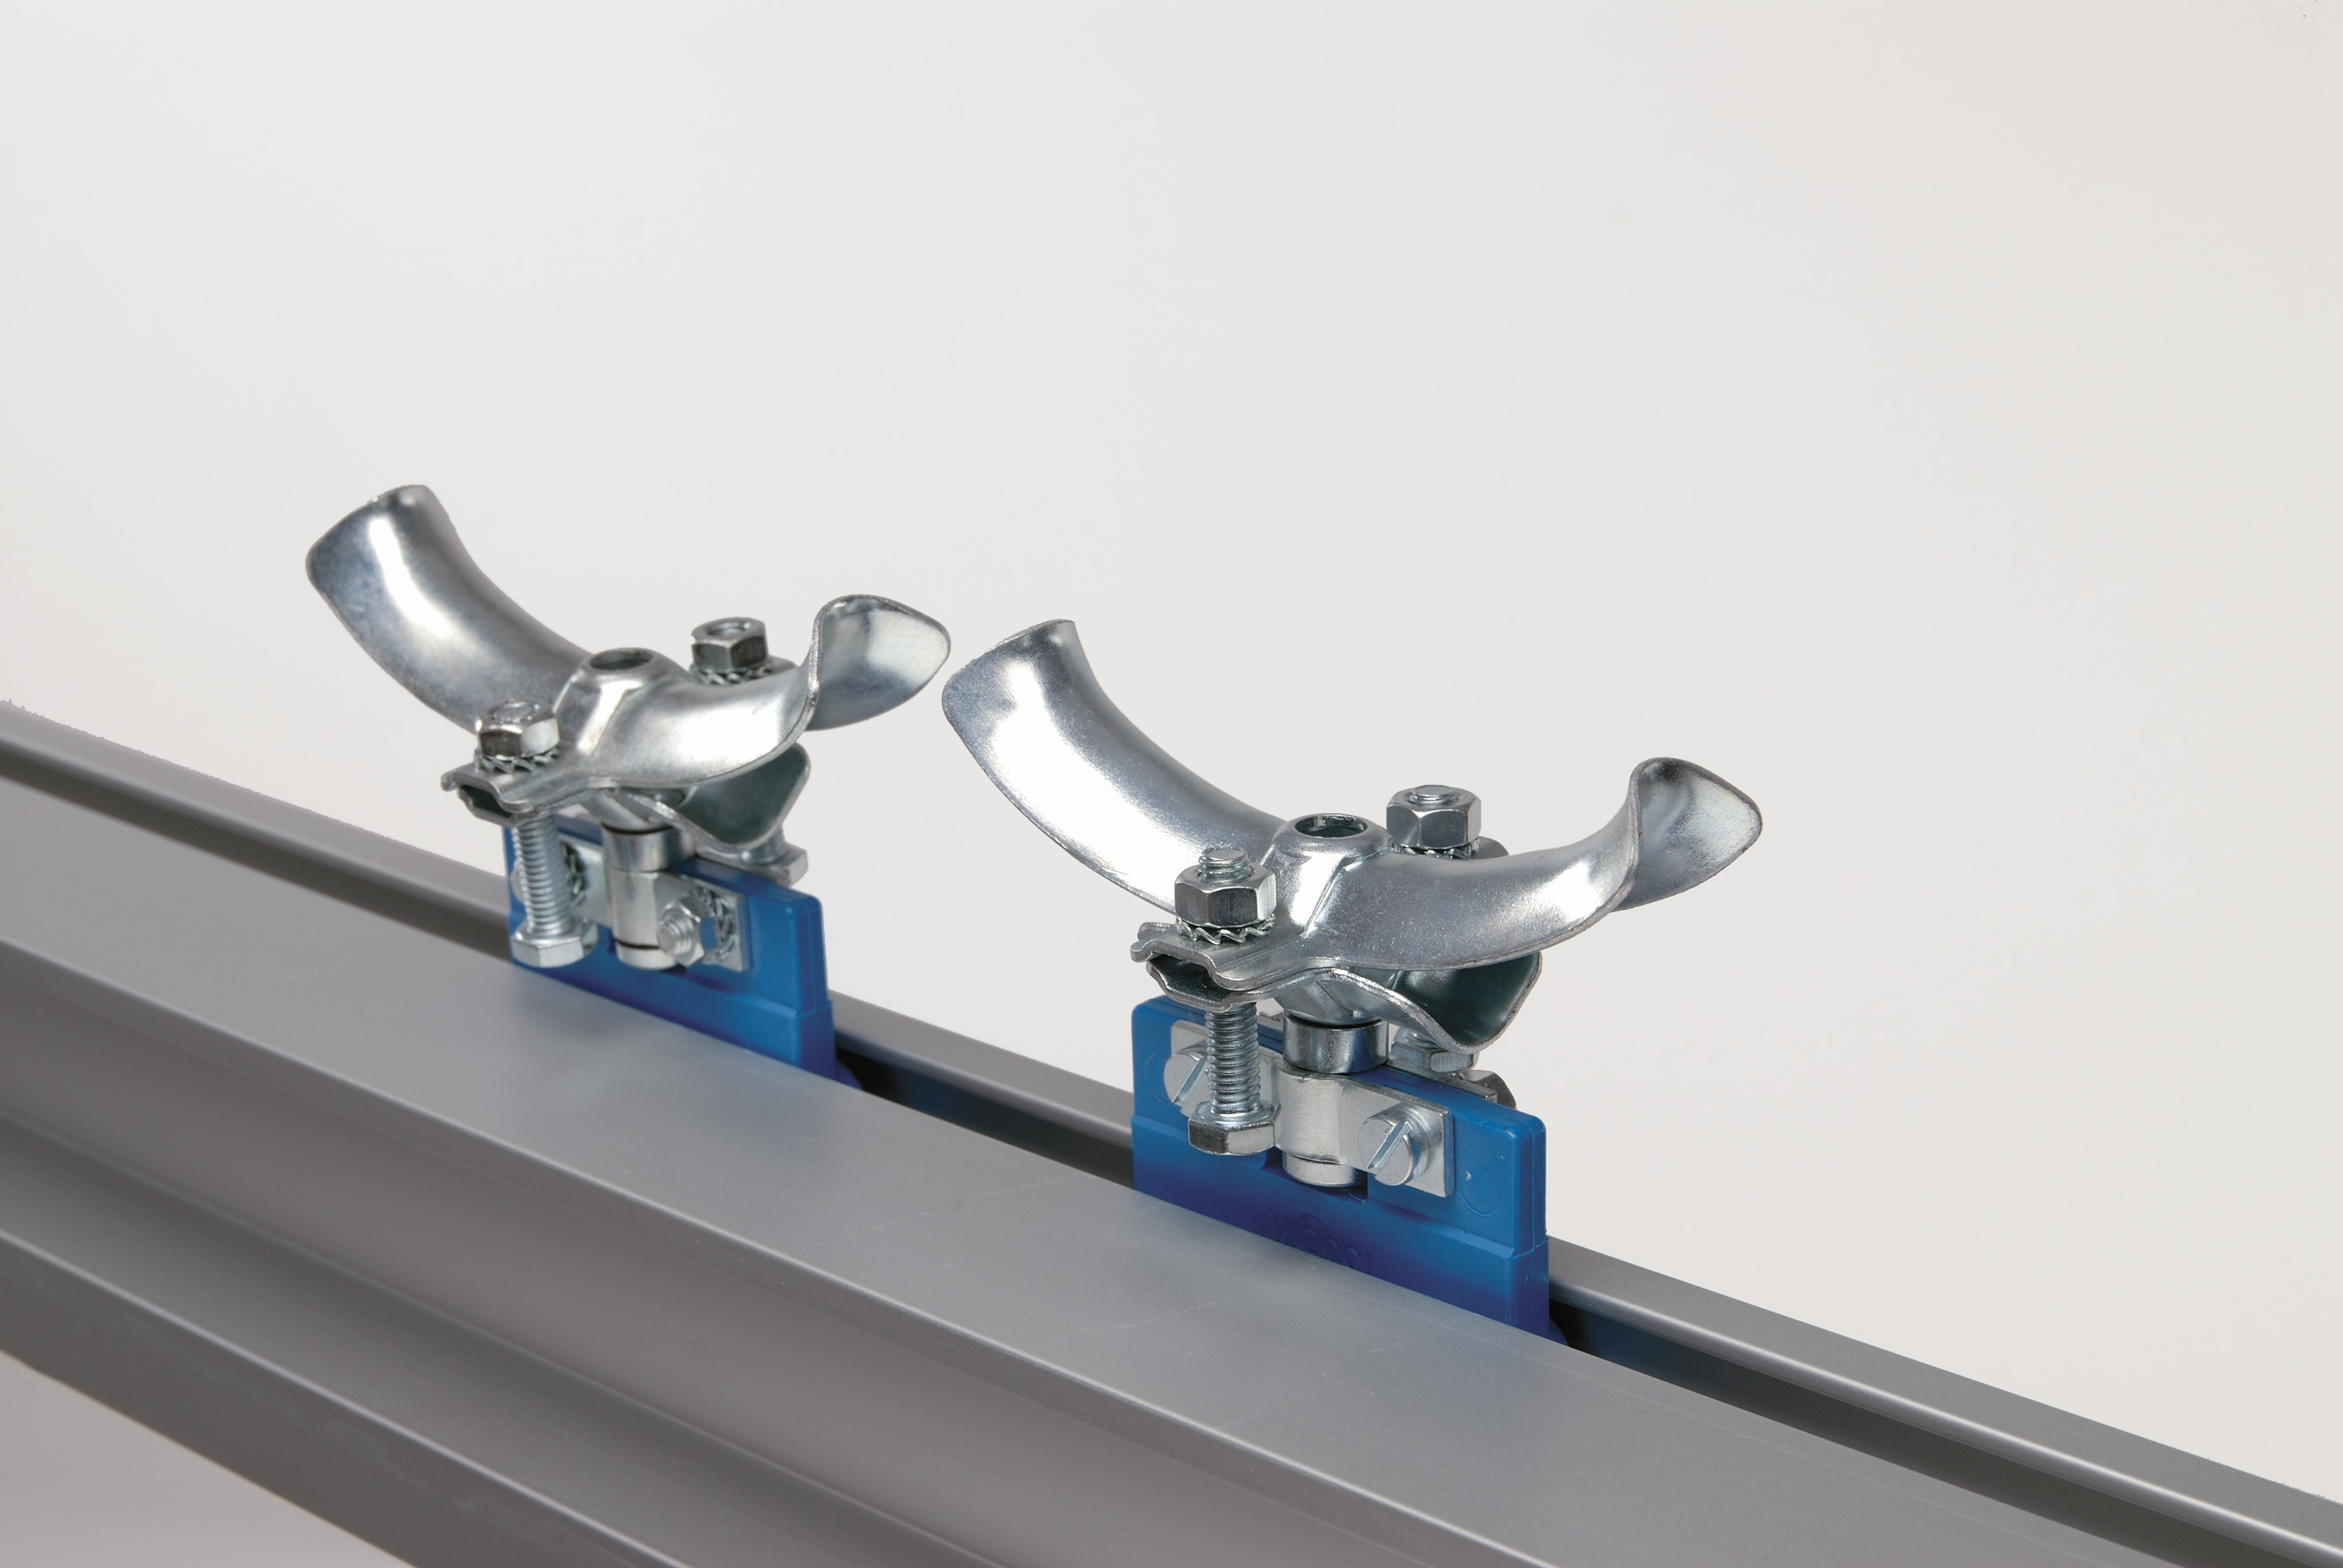 Cable Holders and Stoppers for Ceiling Track